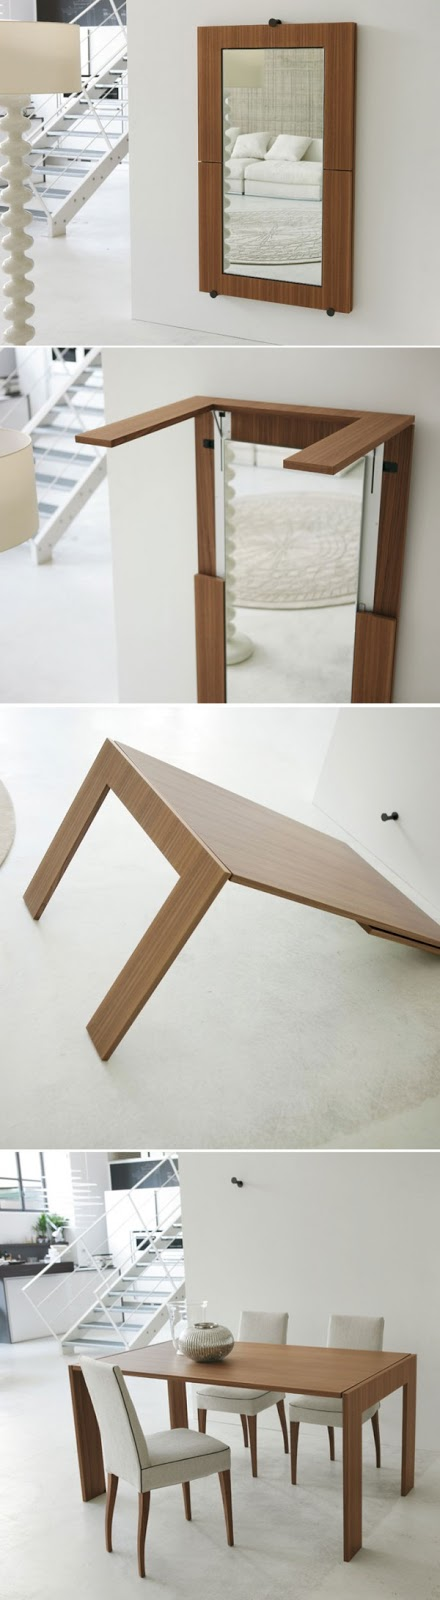 35 CREATIVE MULTIFUNCTIONAL FURNITURE SPACE SAVING IDEAS FOR HOME ...